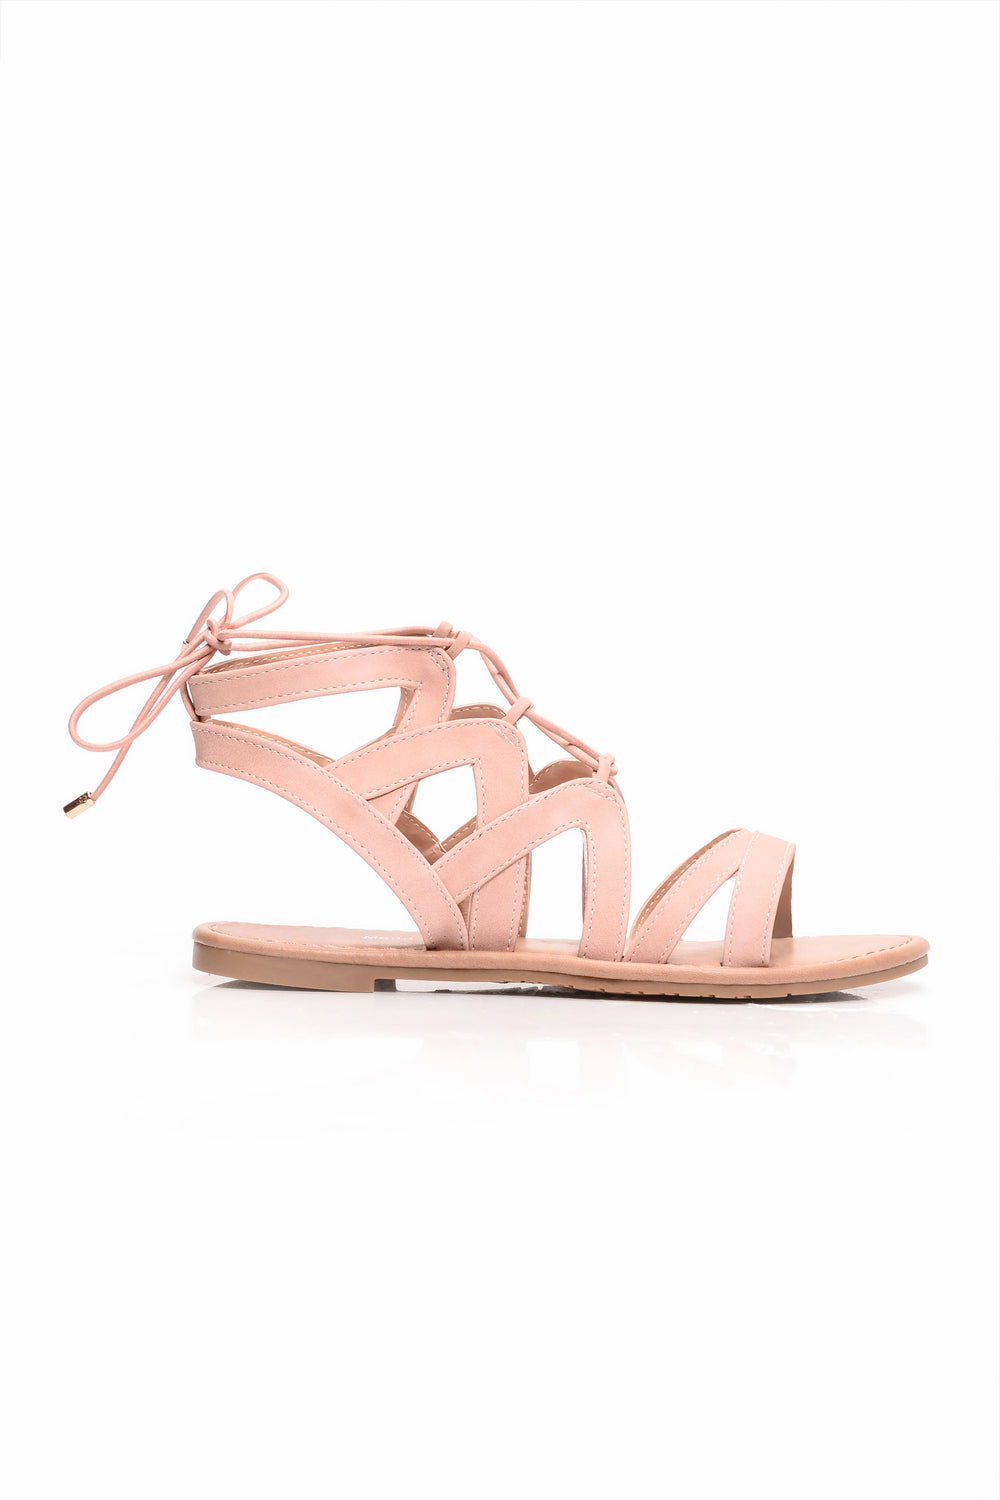 Twist It Up Sandal - Blush